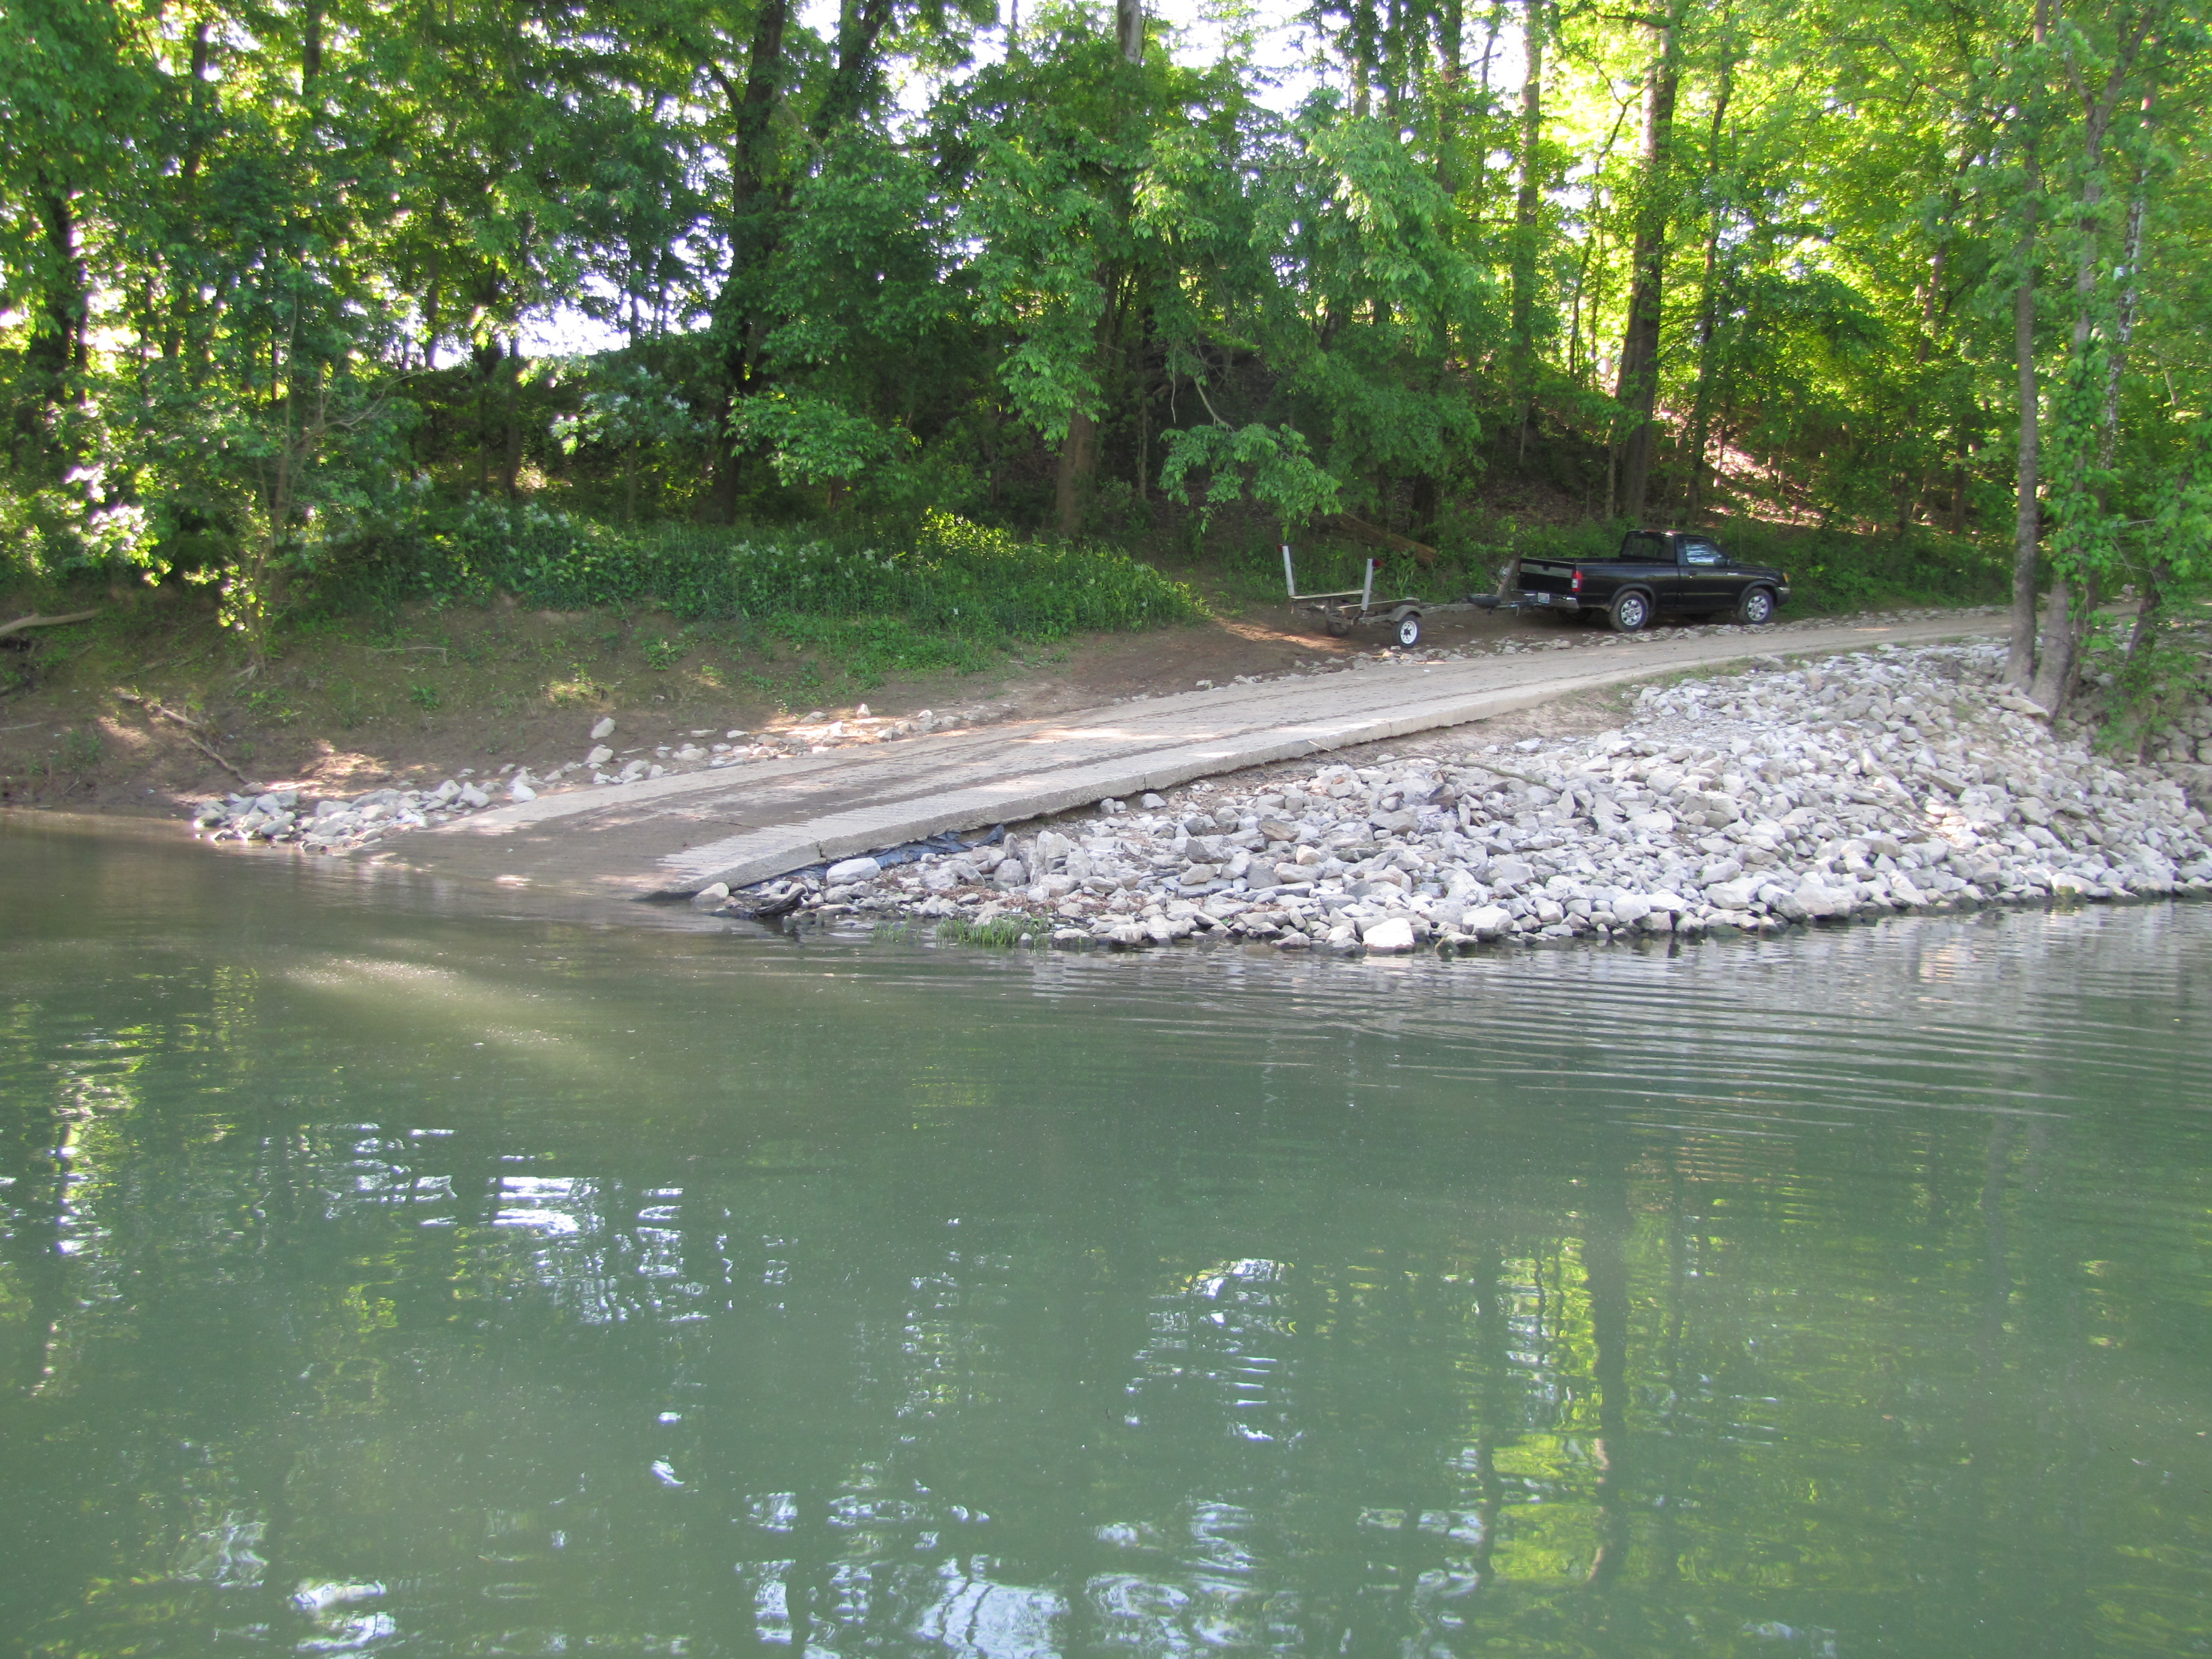 Alexander Creek Boat Ramp provides free public access to boaters and anglers in the middle portion of Pool 5.